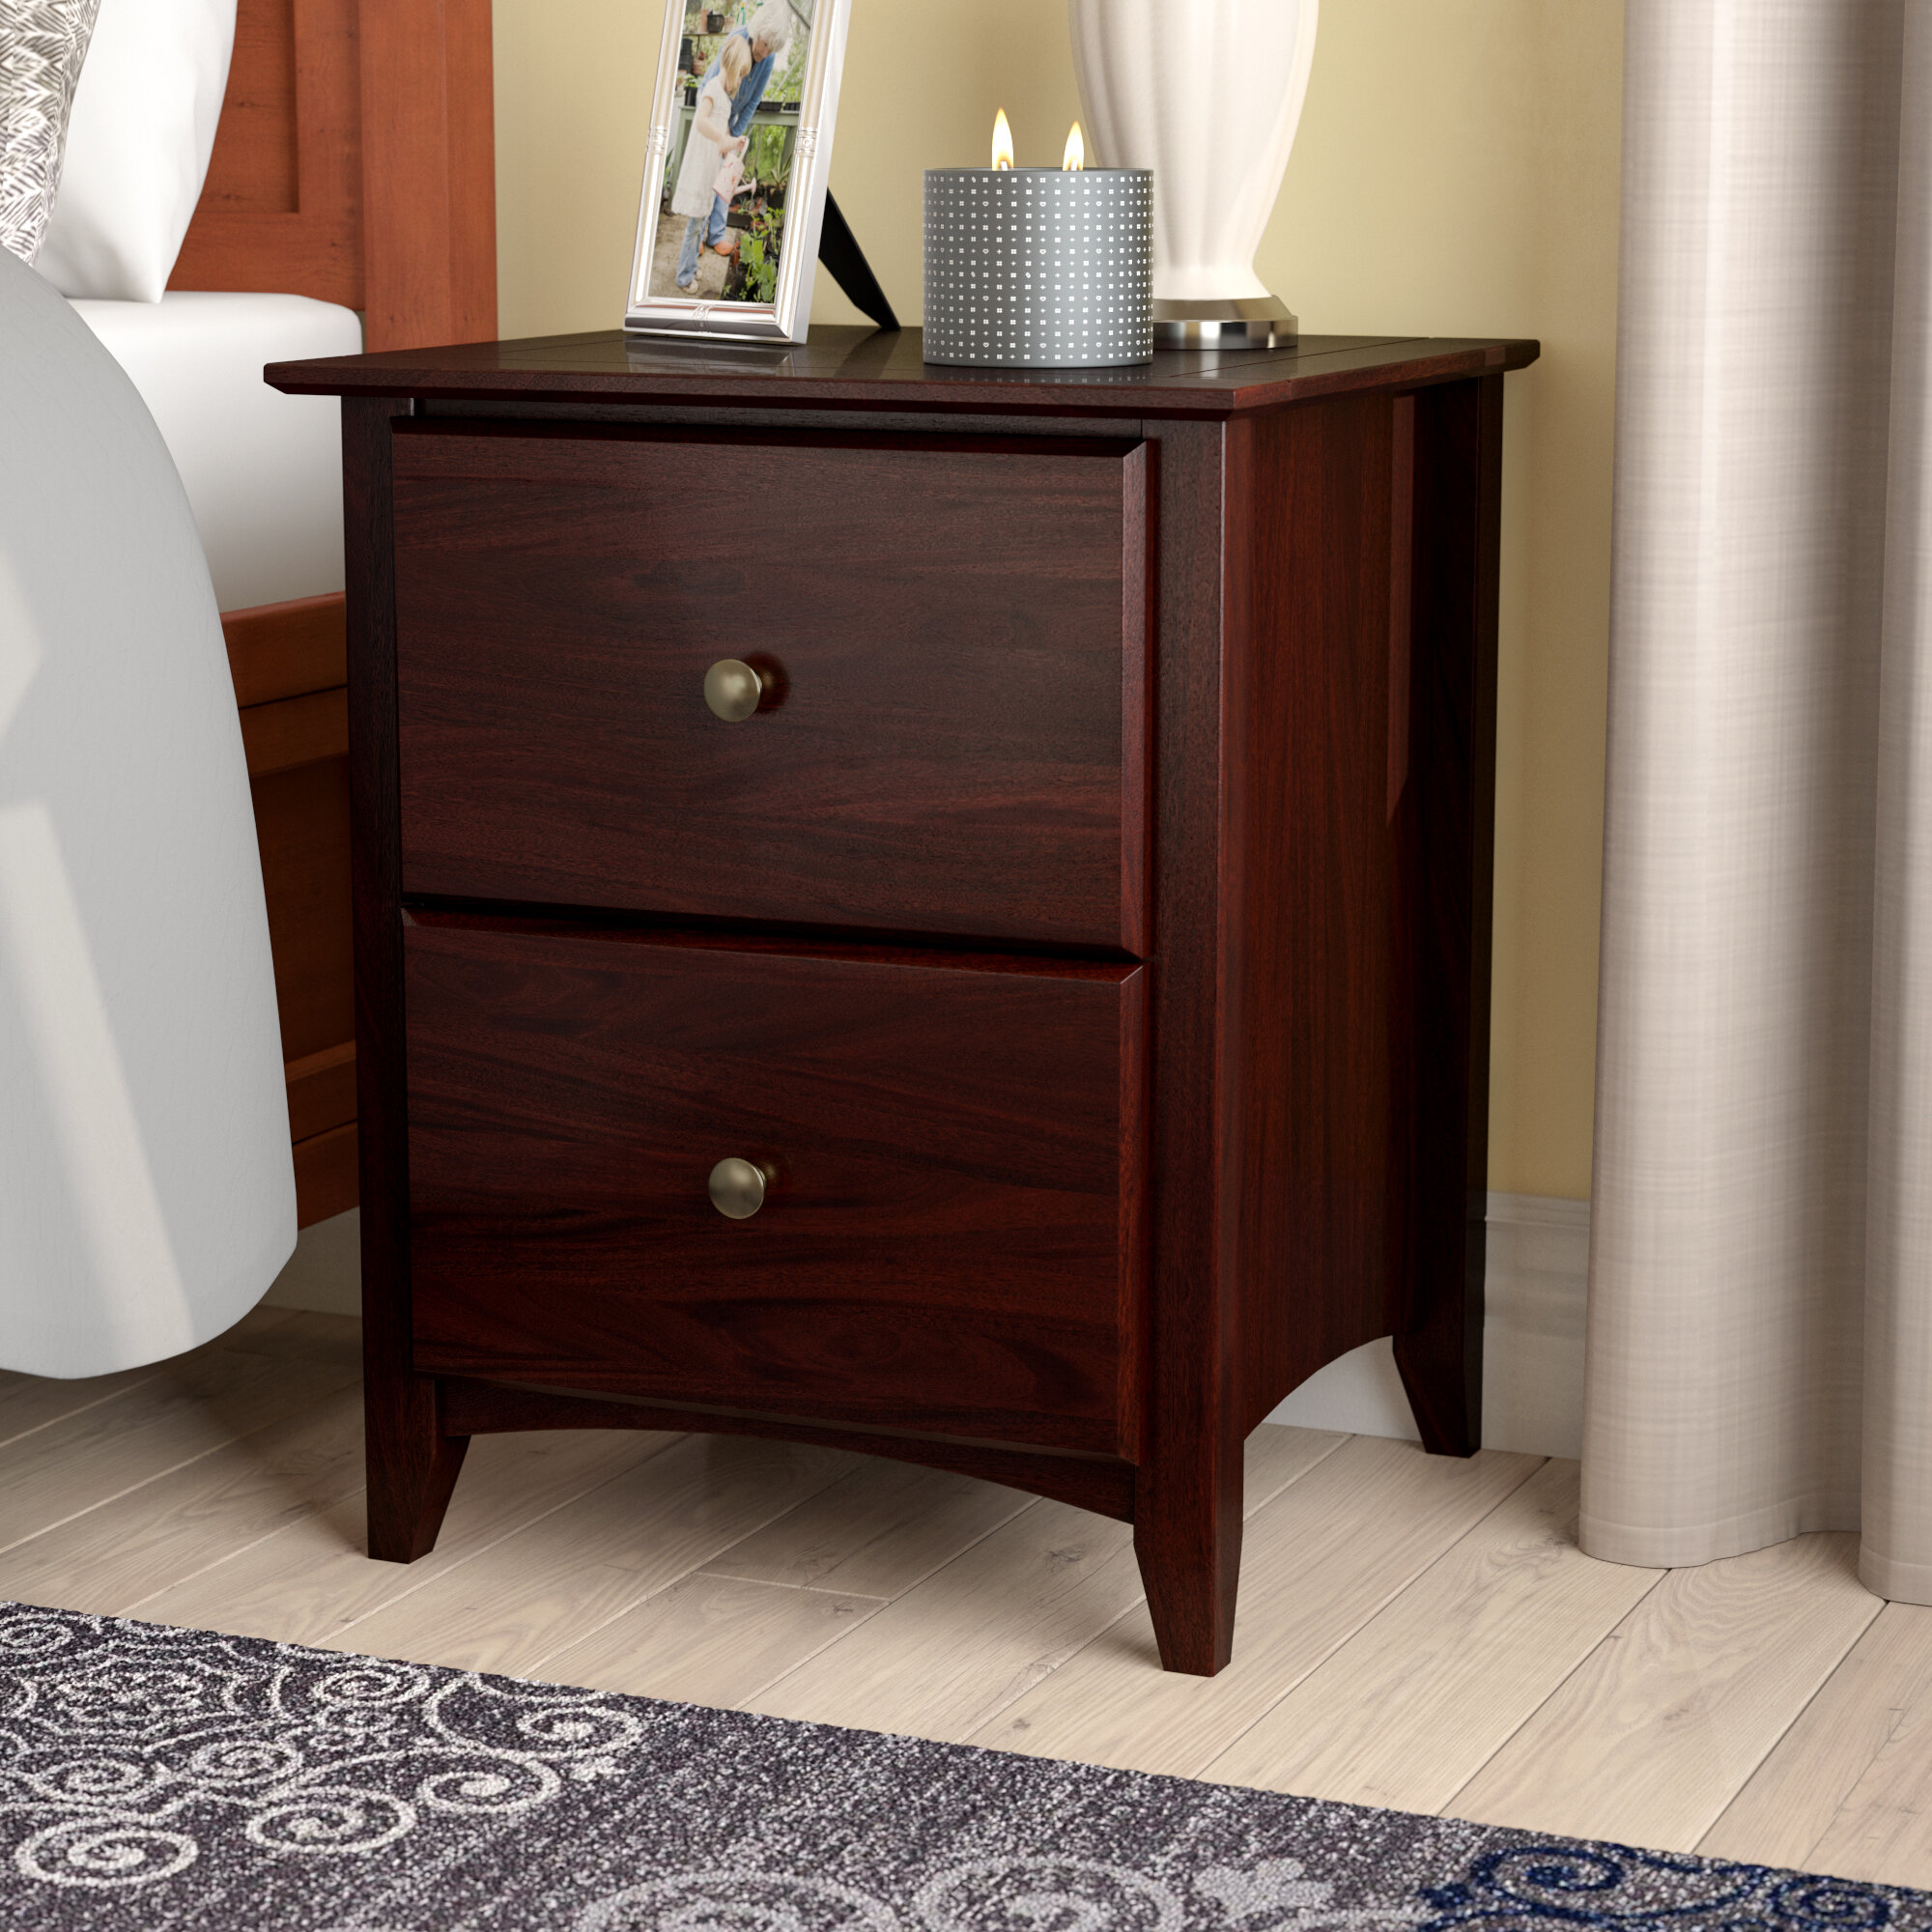 Wood Monitor Stand with Drawer and Cubby in CHERRY Large Size